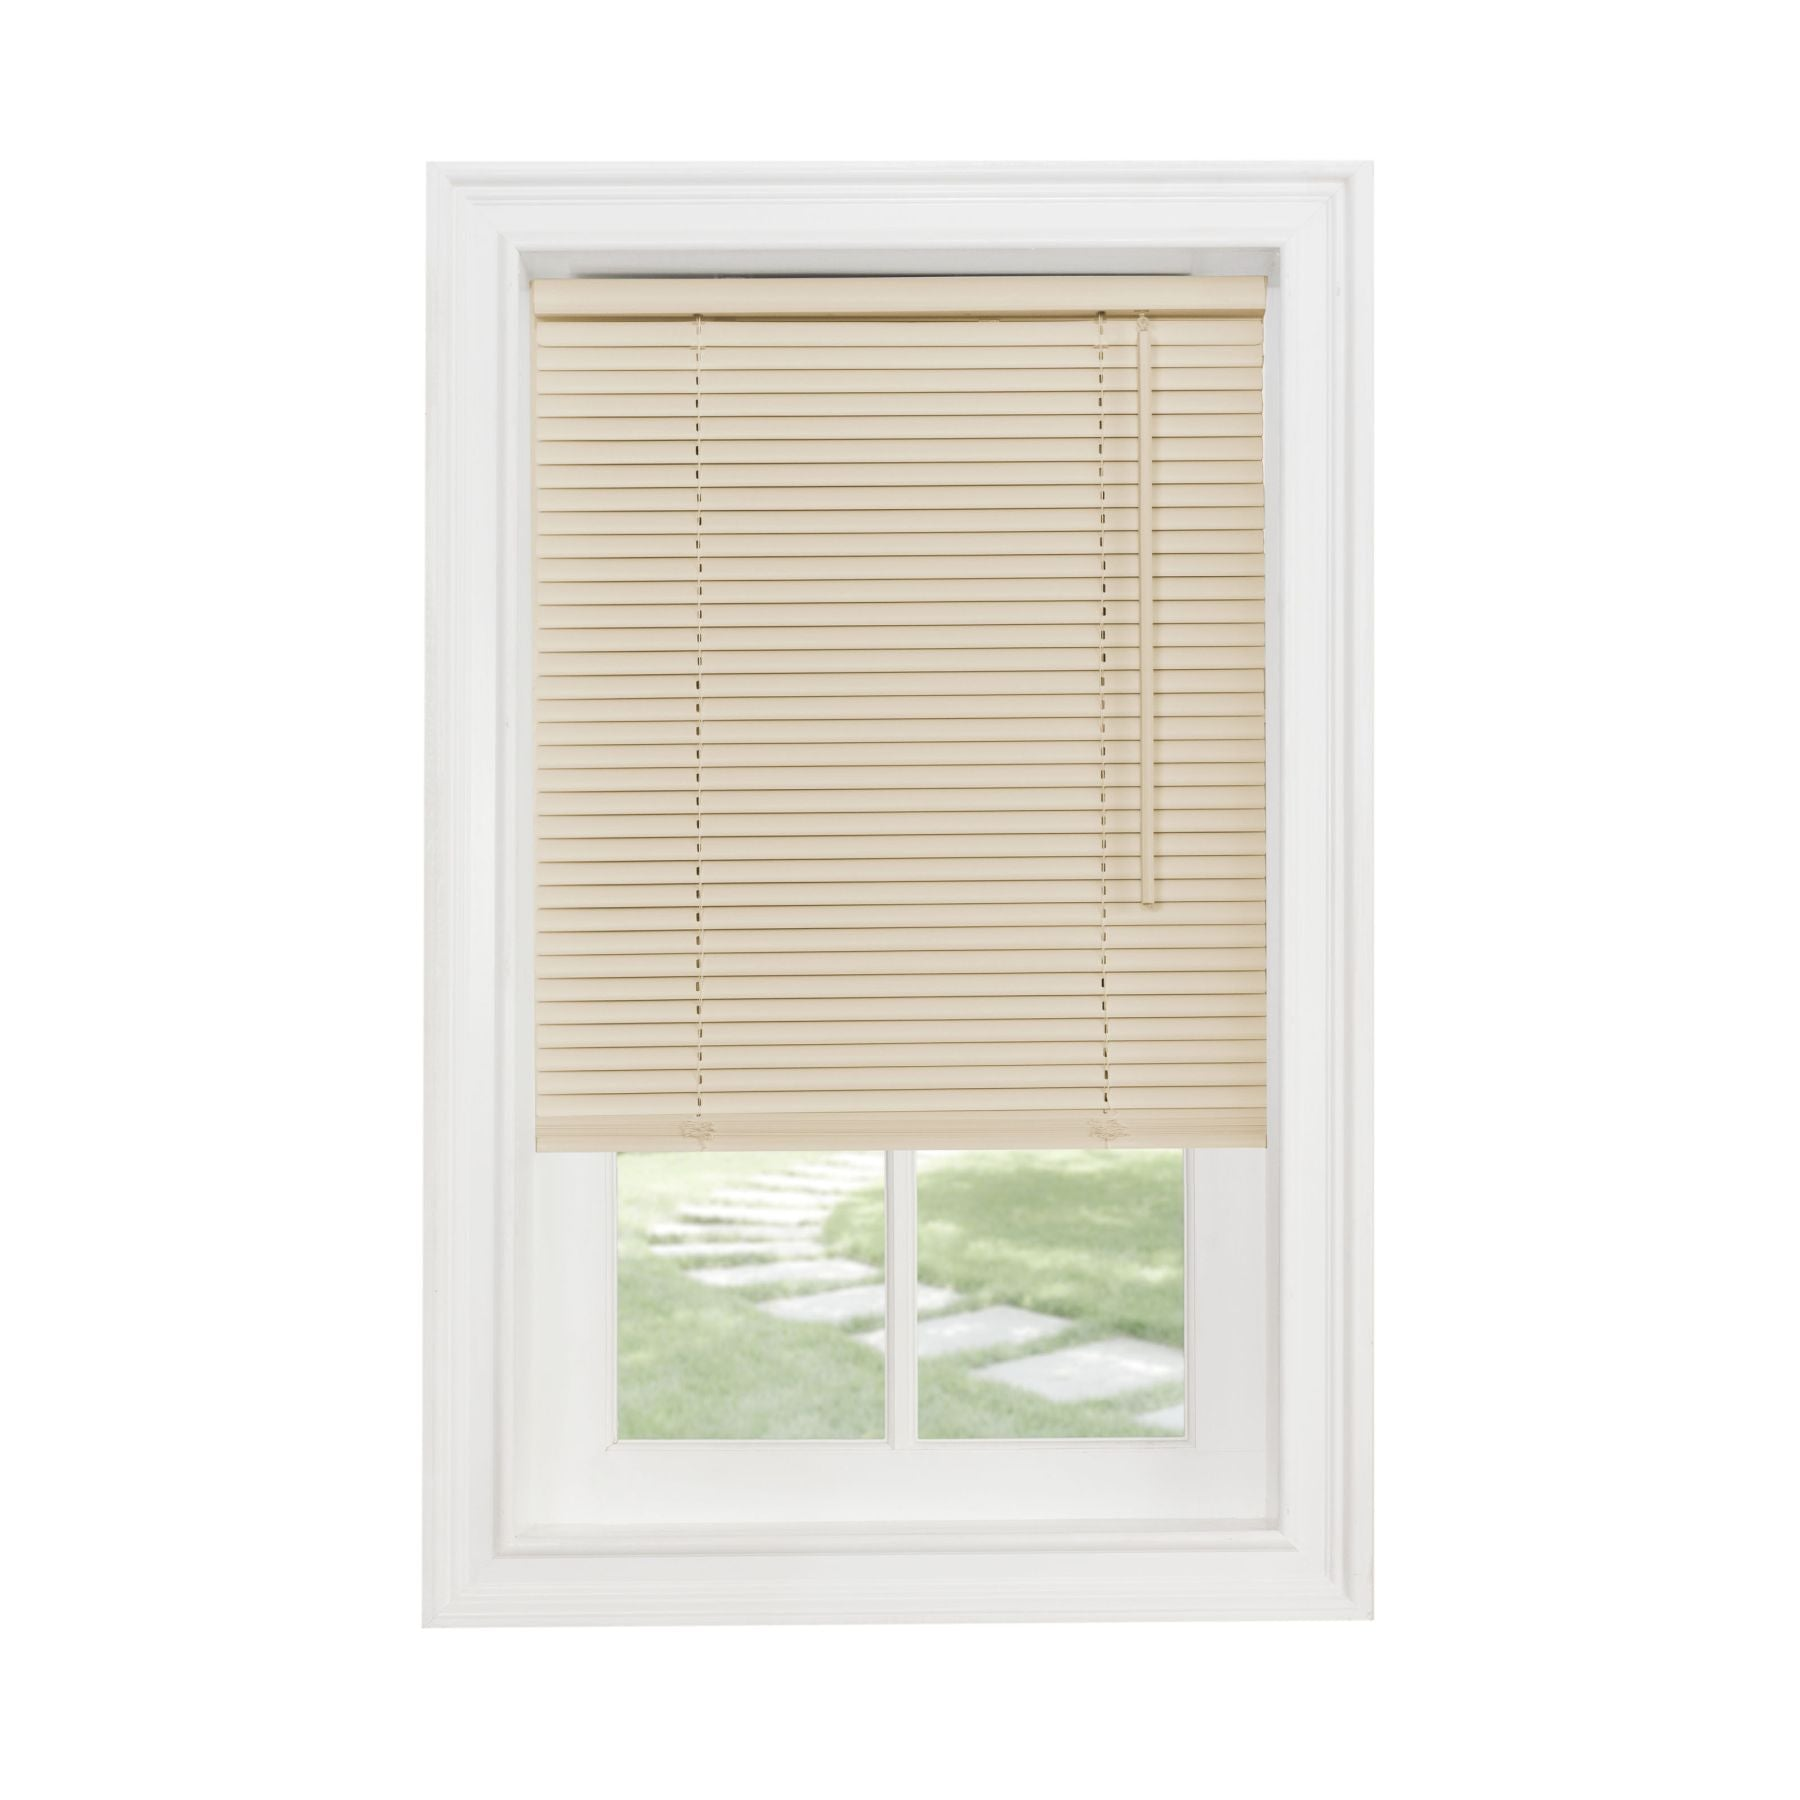 "Traditional Elegance Cordless Sunrise 1"" Light Filtering Mini Blind 31x64 - Alabaster"